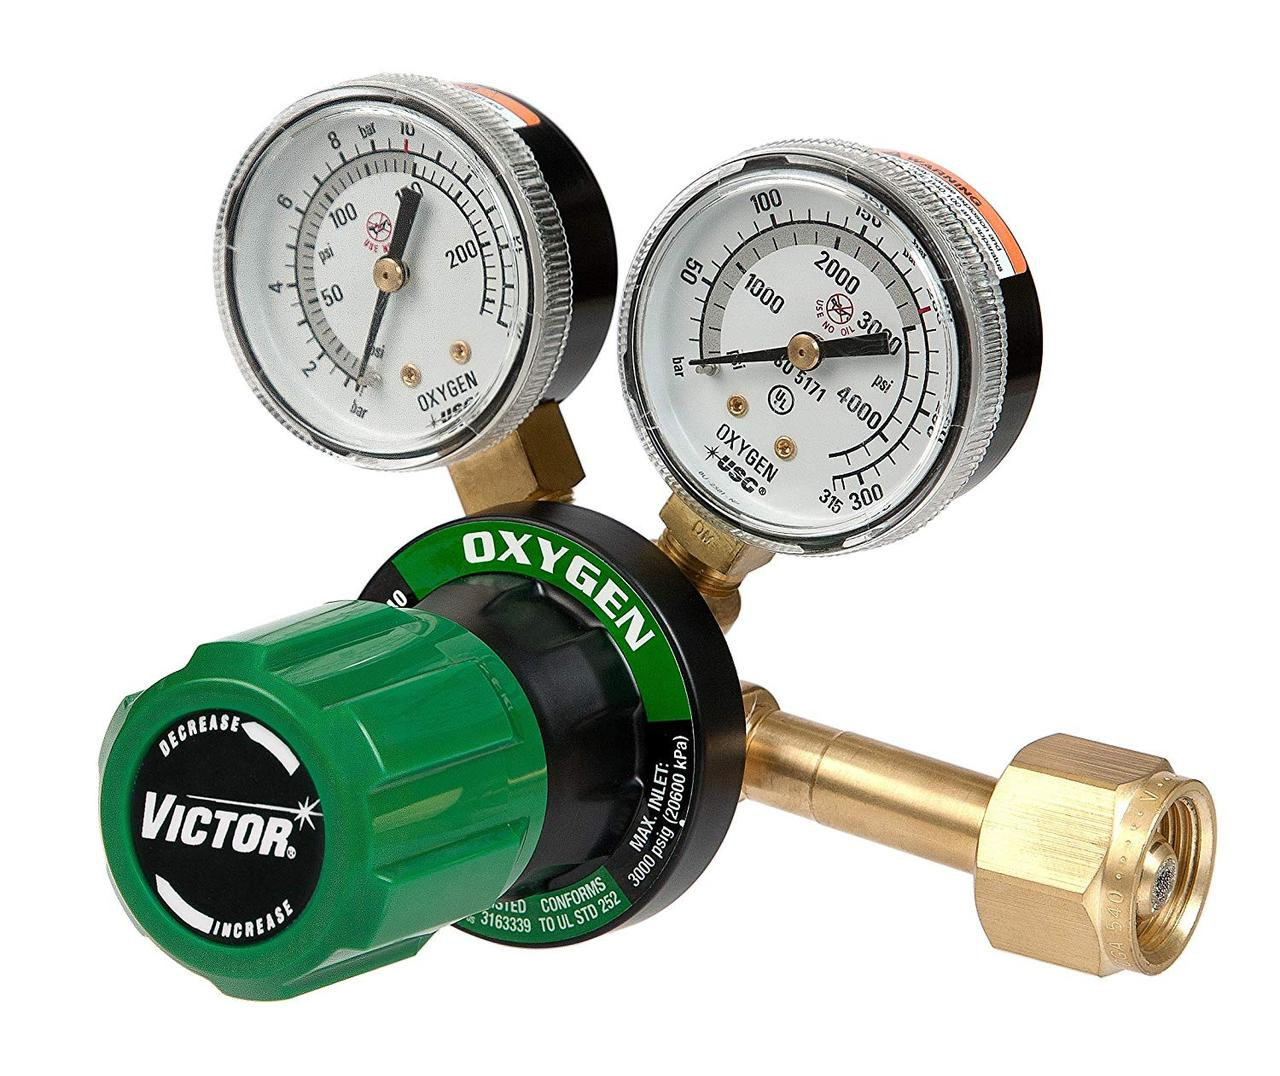 350 MEDIUM DUTY OXYGEN PRESSURE REGULATOR